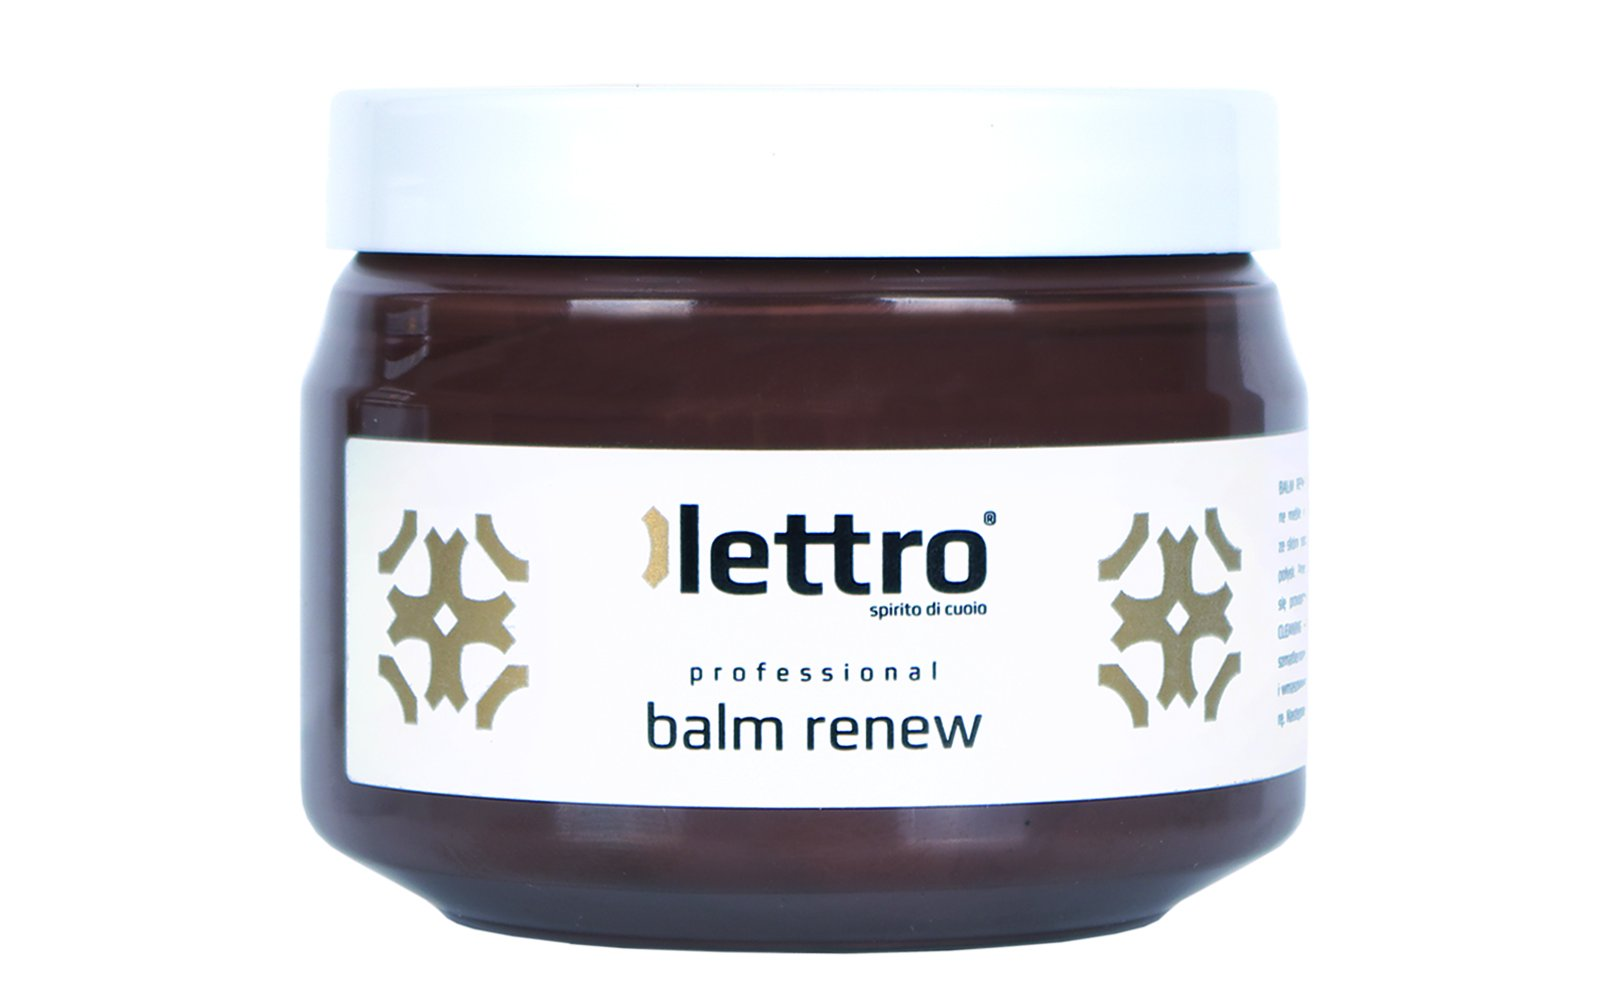 Lettro Balm Renew, quality leather restore and color revive for furniture car seats shoes upholstery saddlery, 200ml (brown)